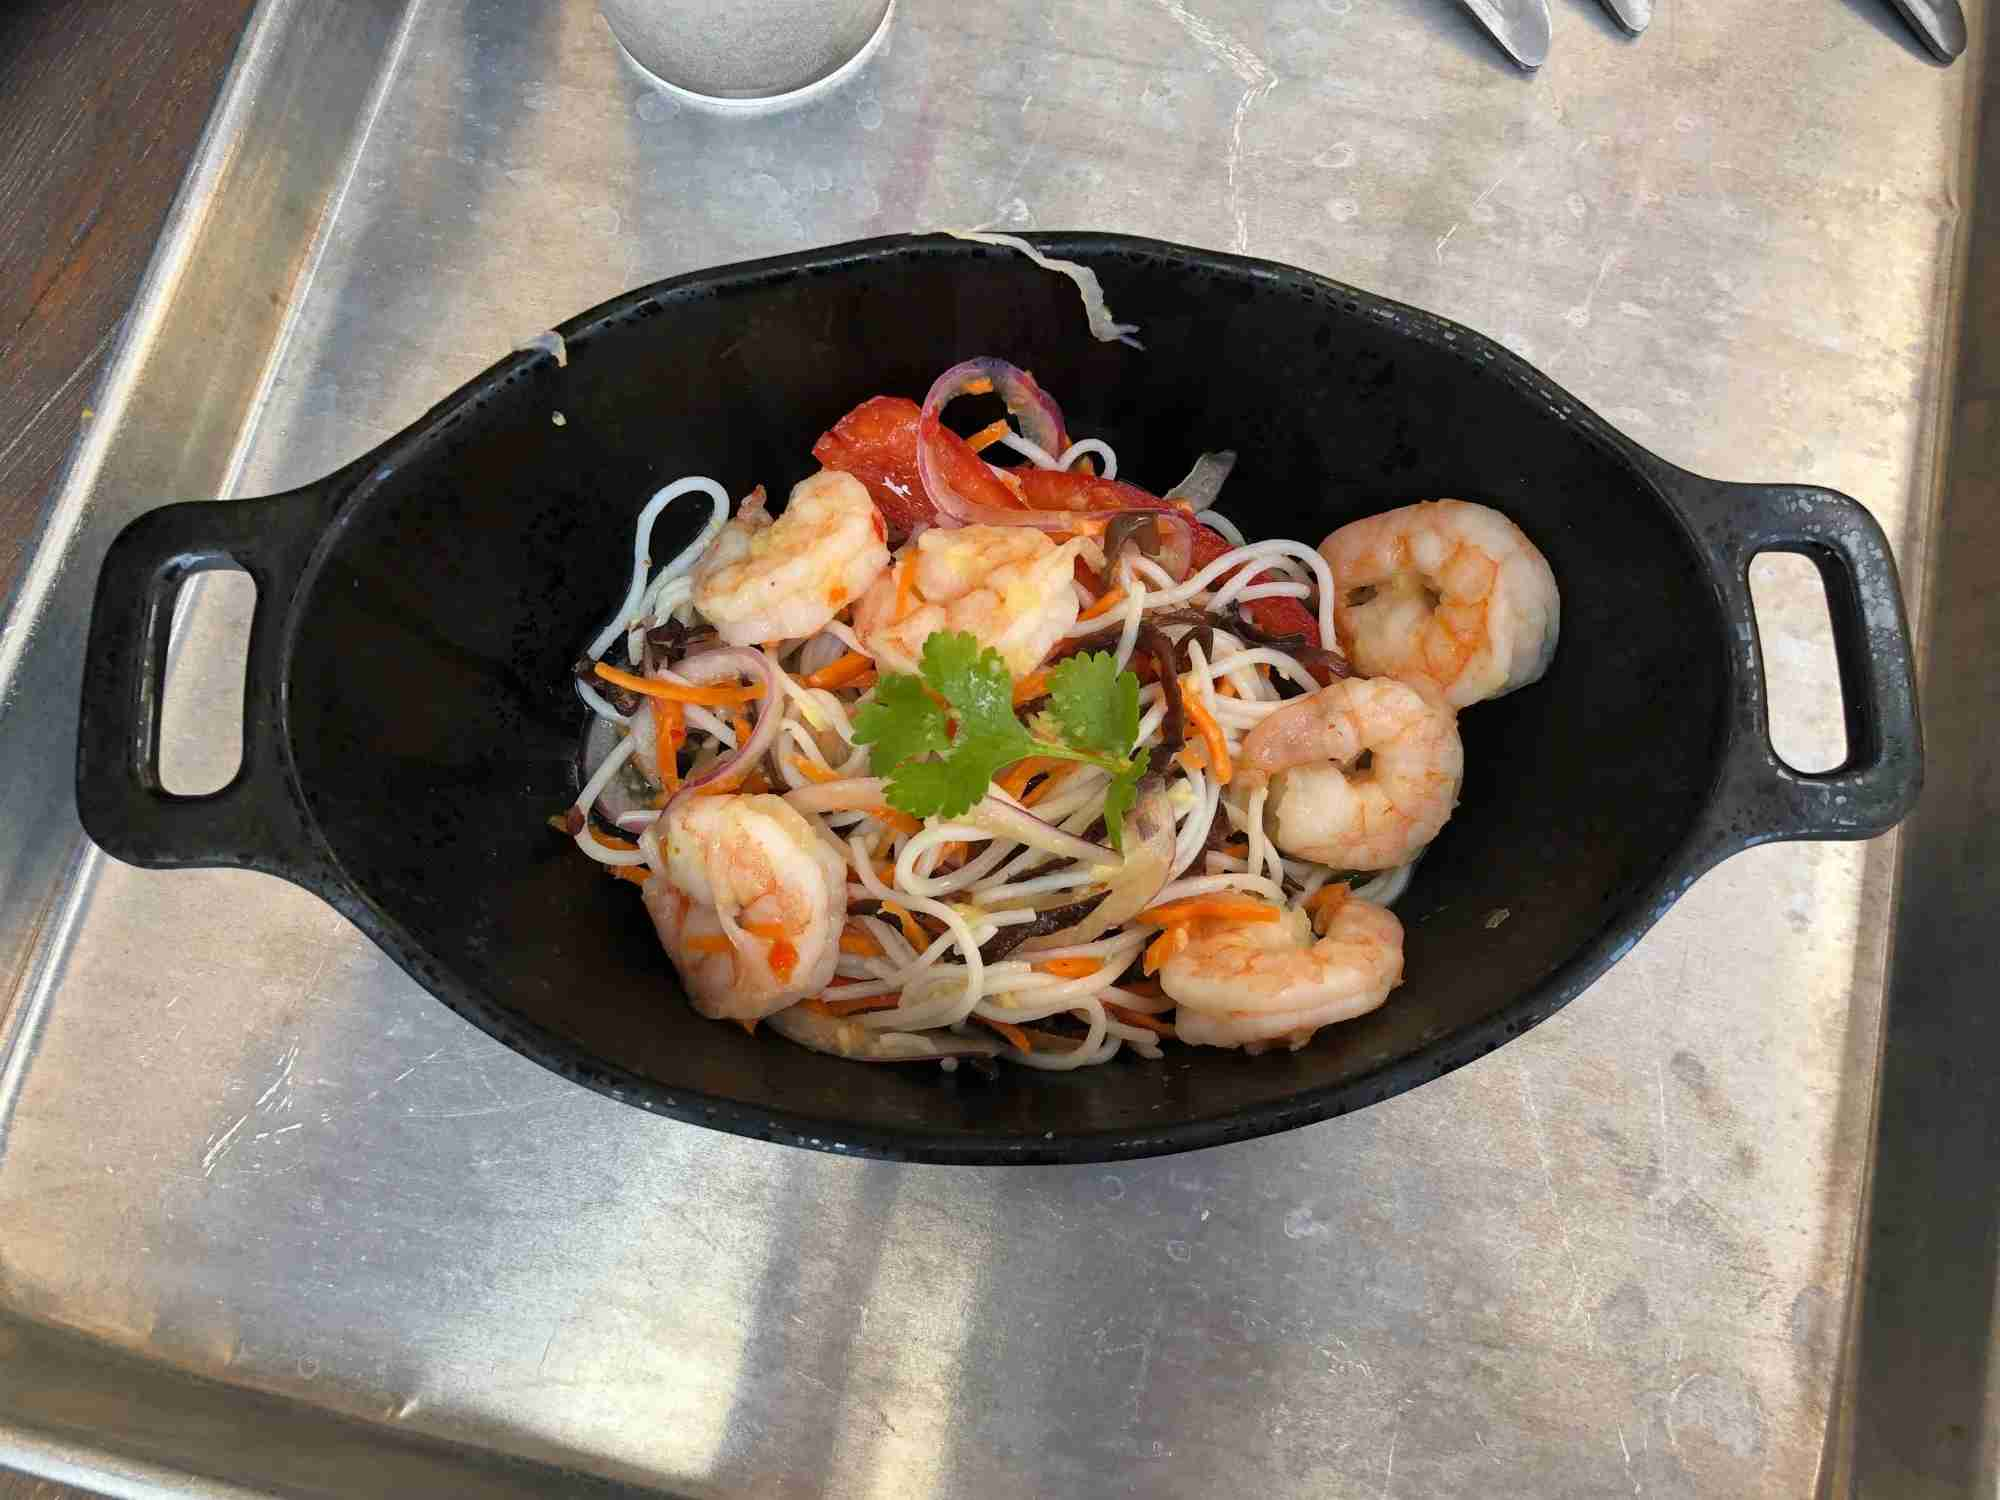 Would your kids eat chilled shrimp with noodles? Ours wouldn